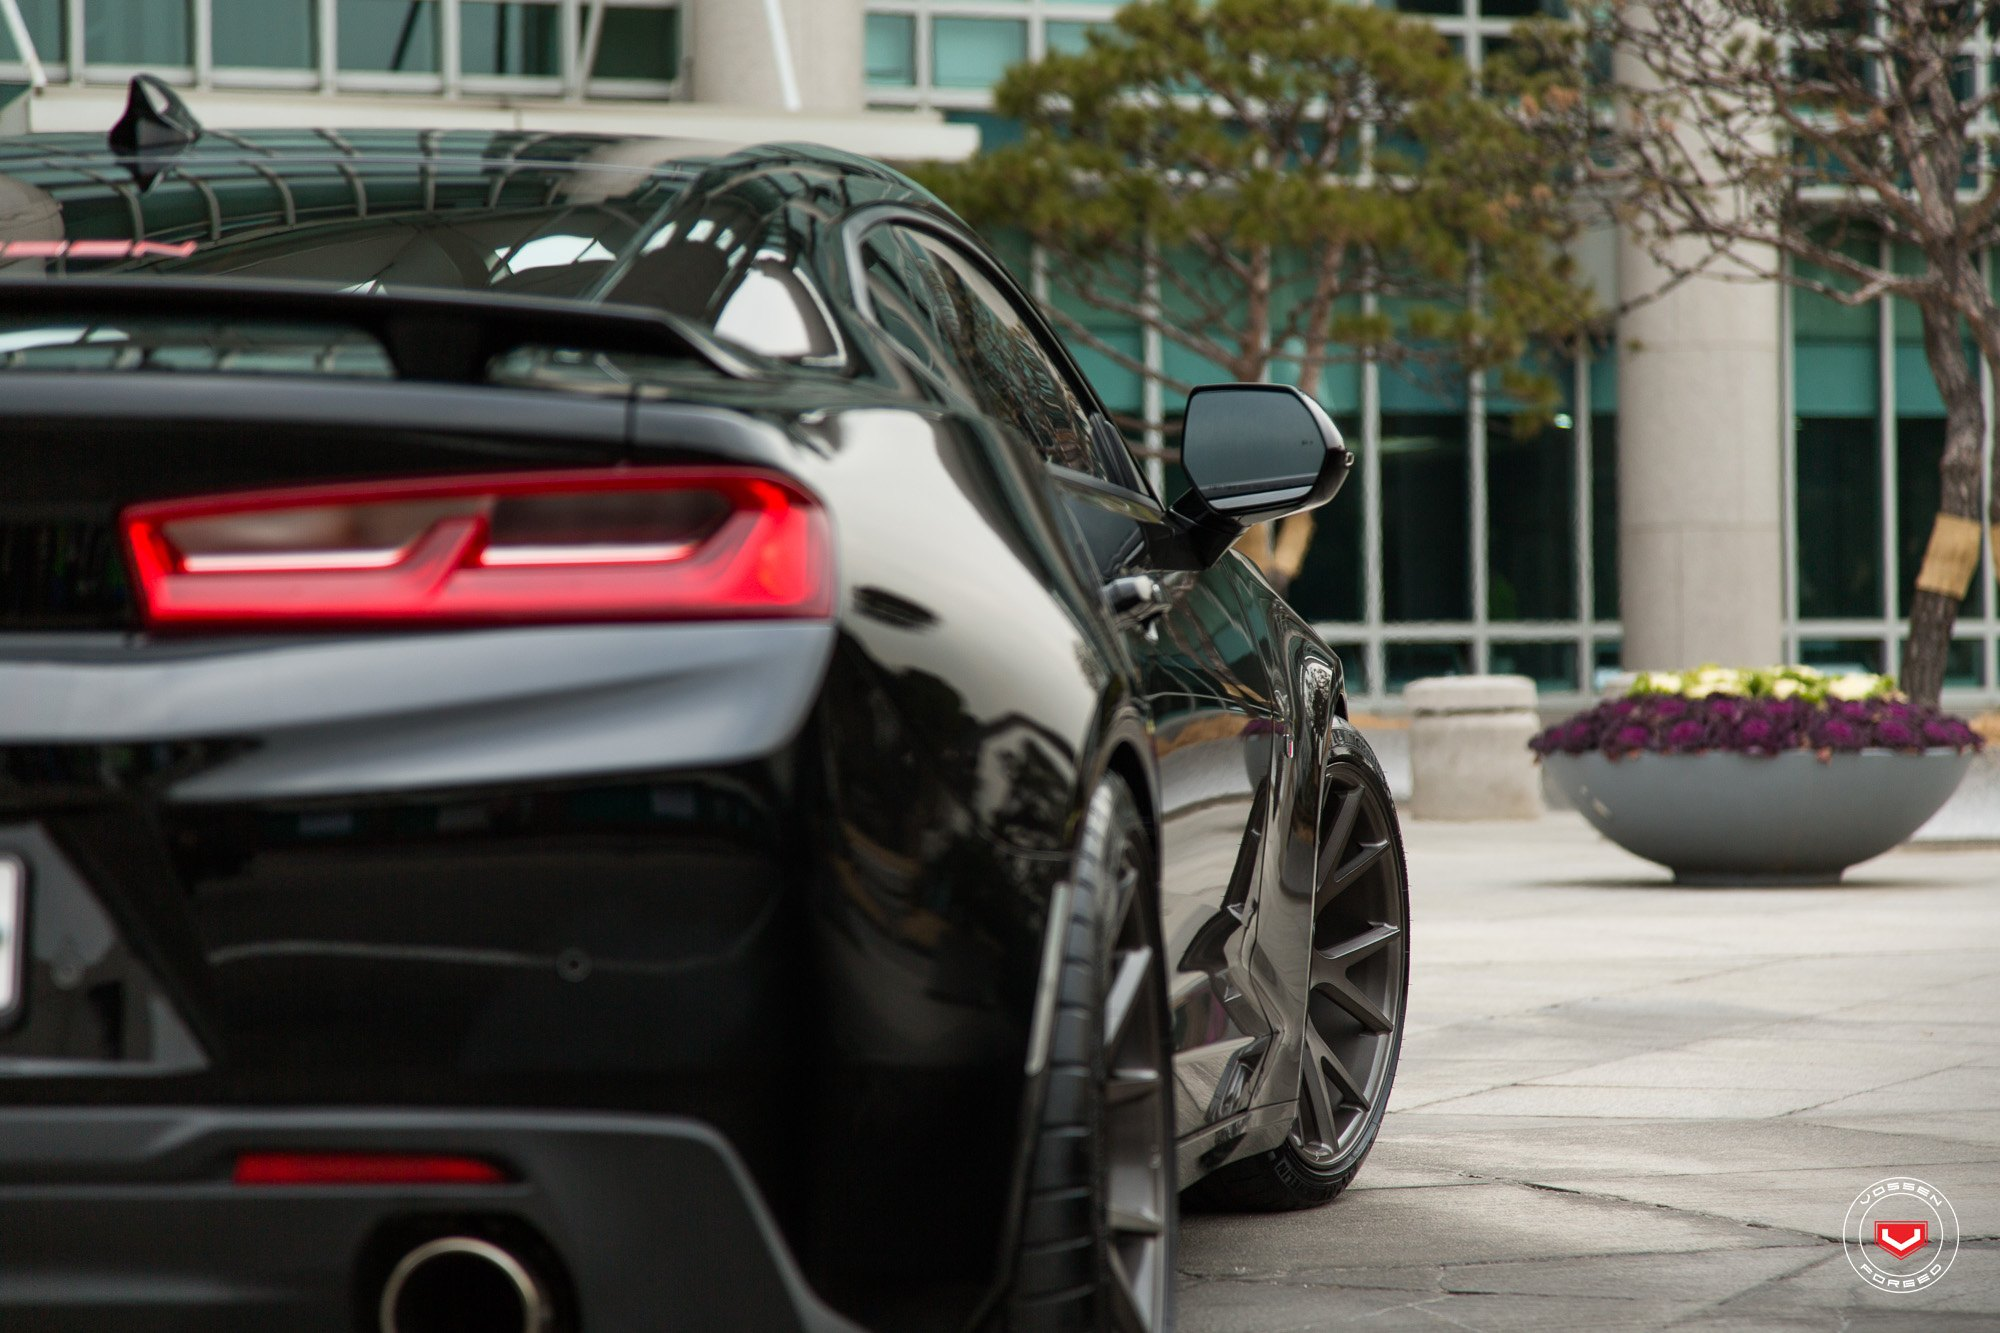 Black Chevy Camaro SS with Custom Red Taillights - Photo by Vossen